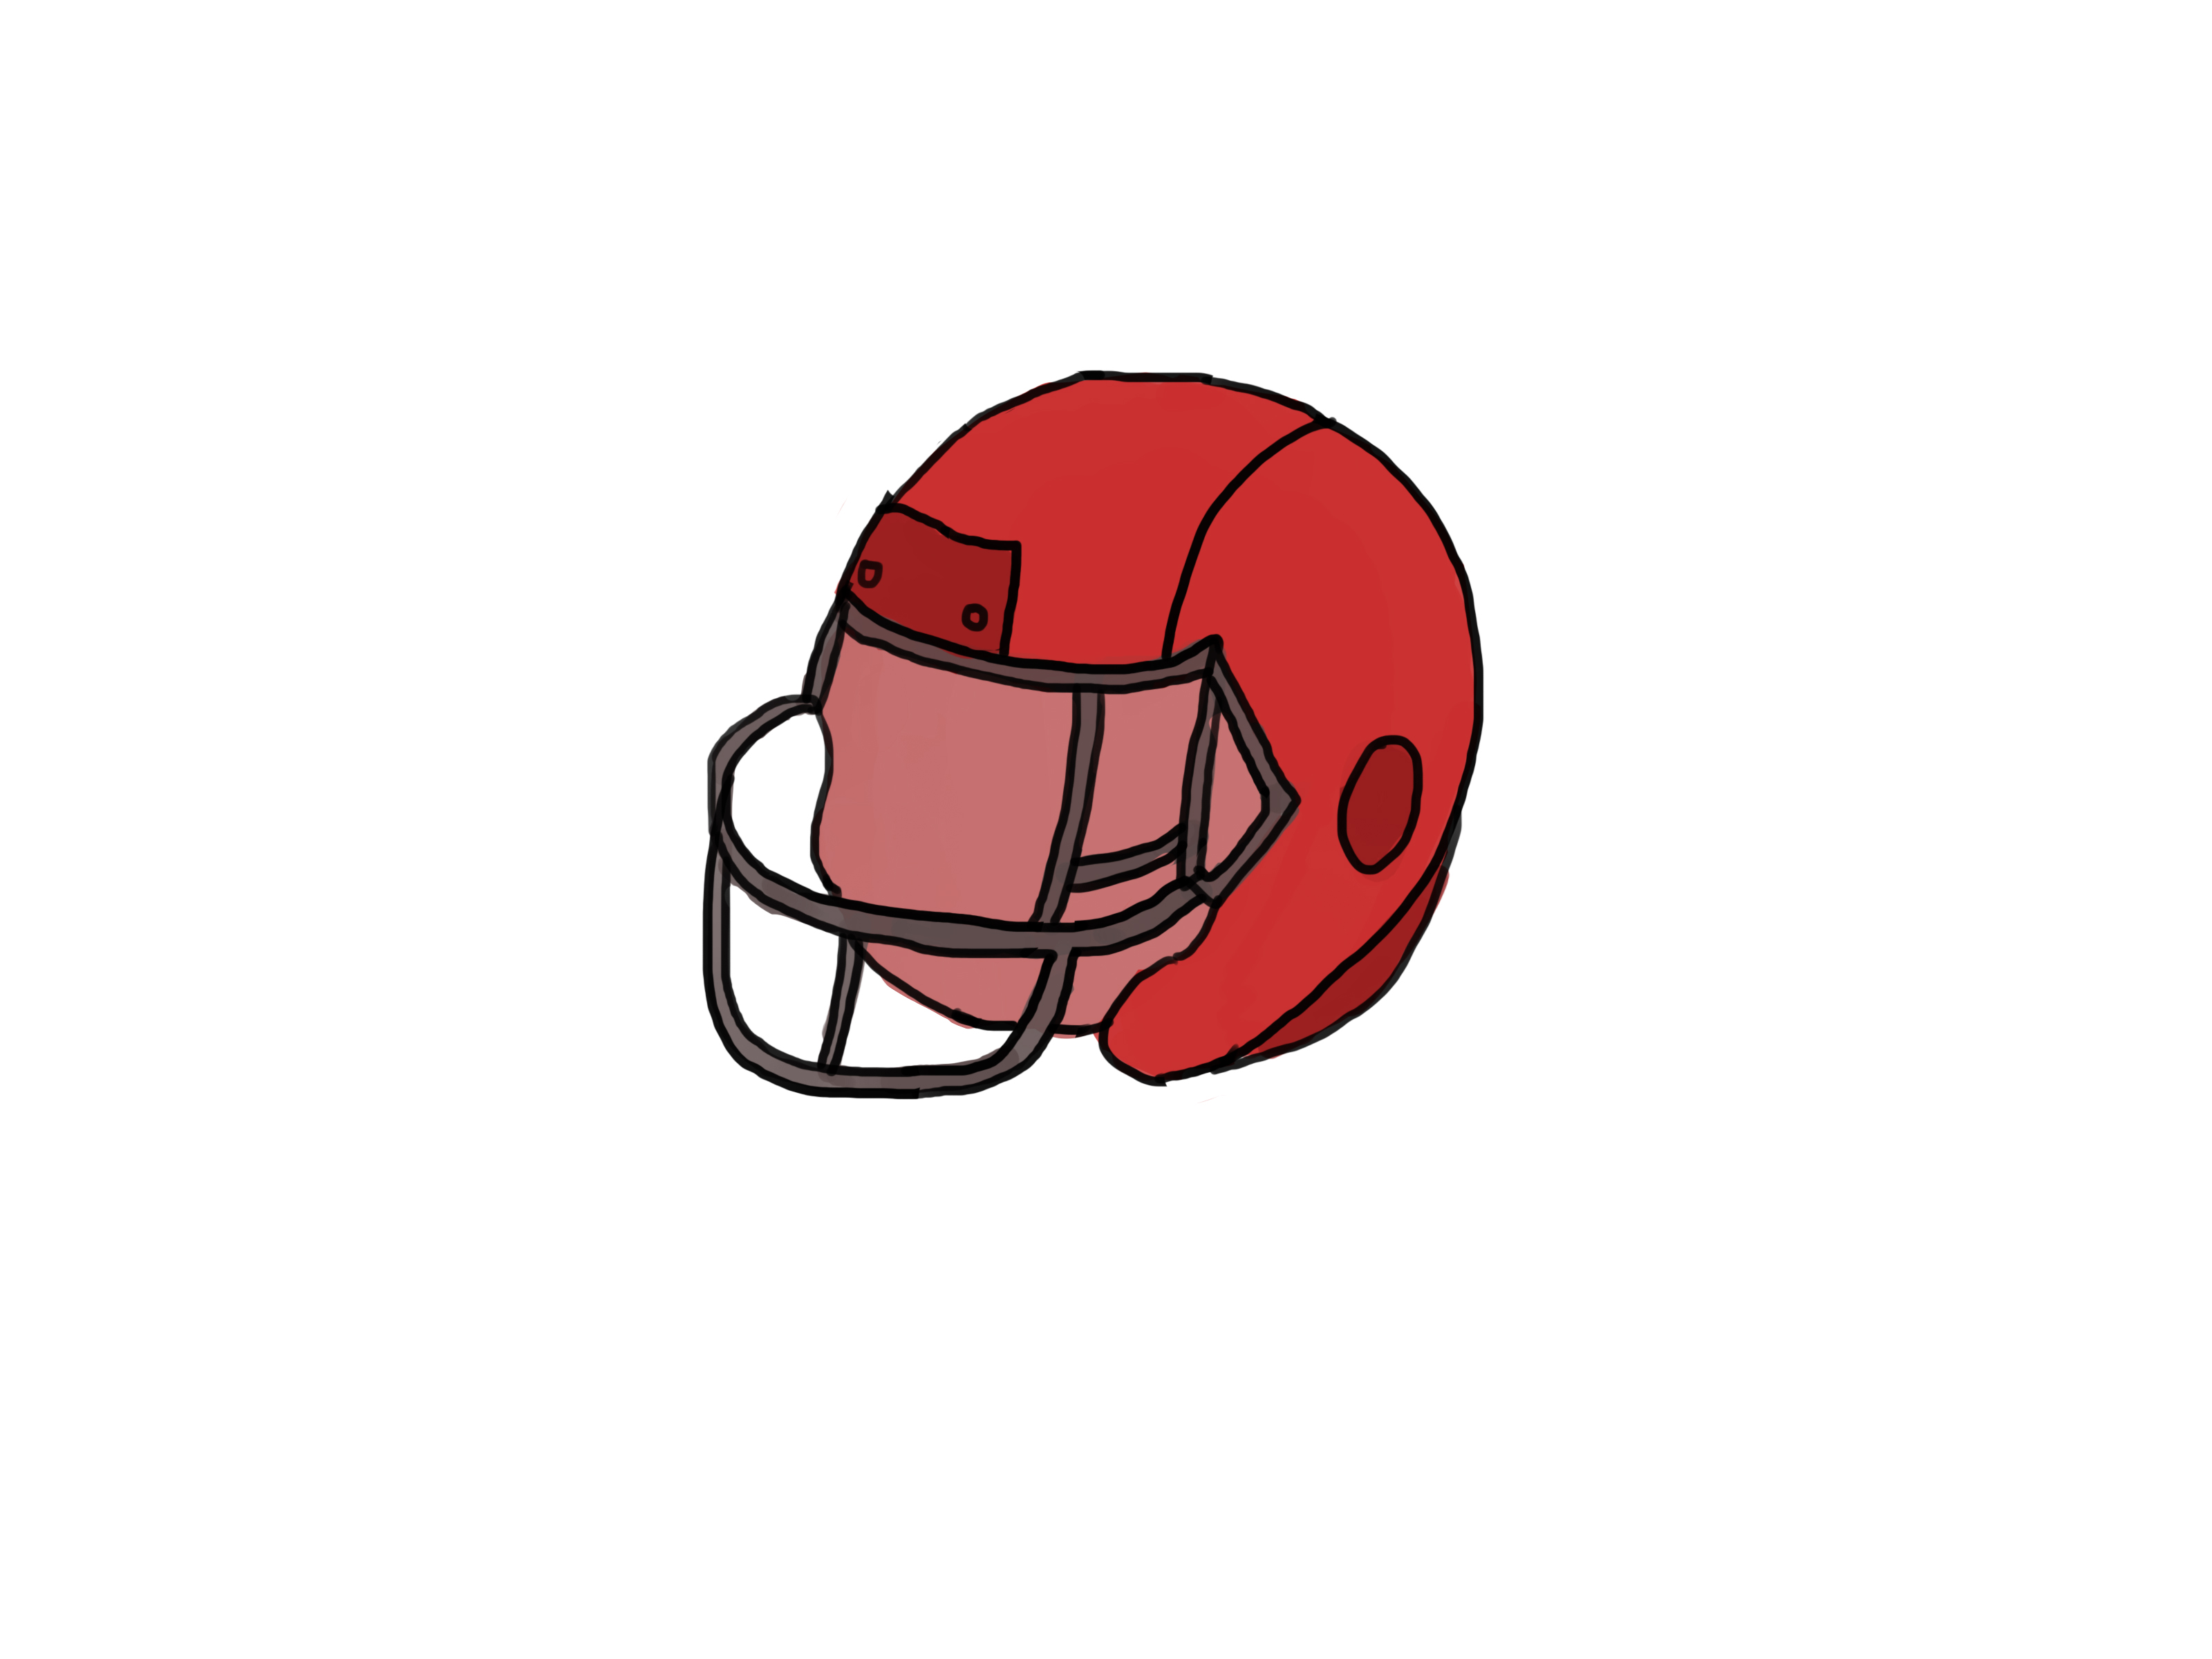 3200x2400 How To Draw A Football Helmet